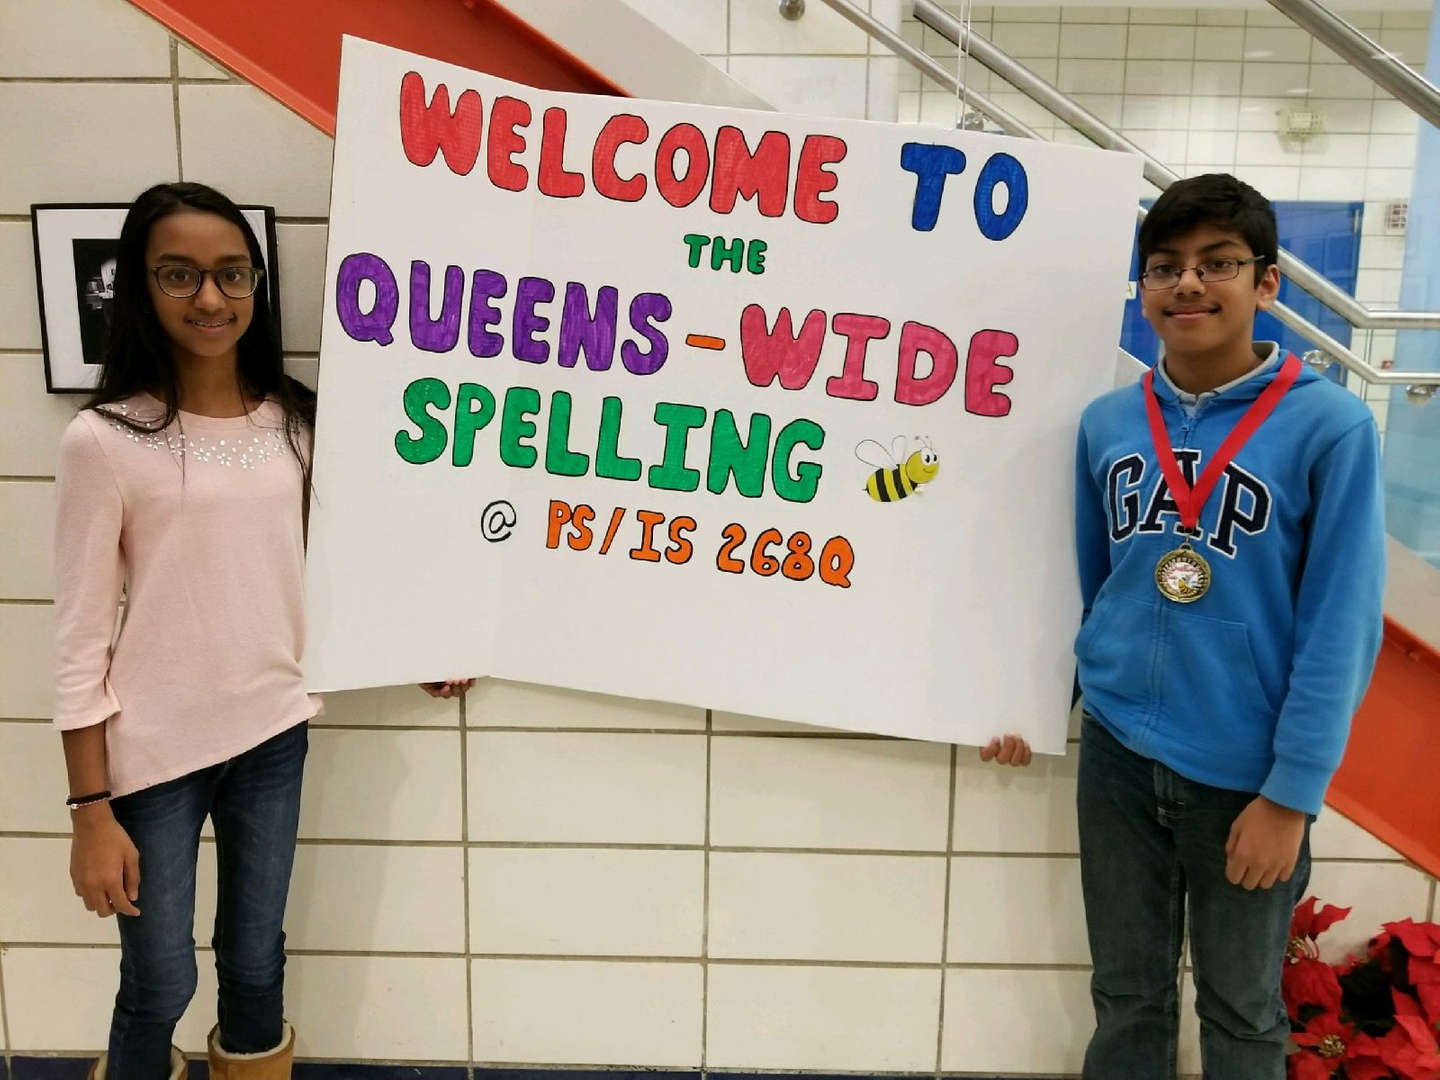 boy and girl finalist for spelling bee hold sign